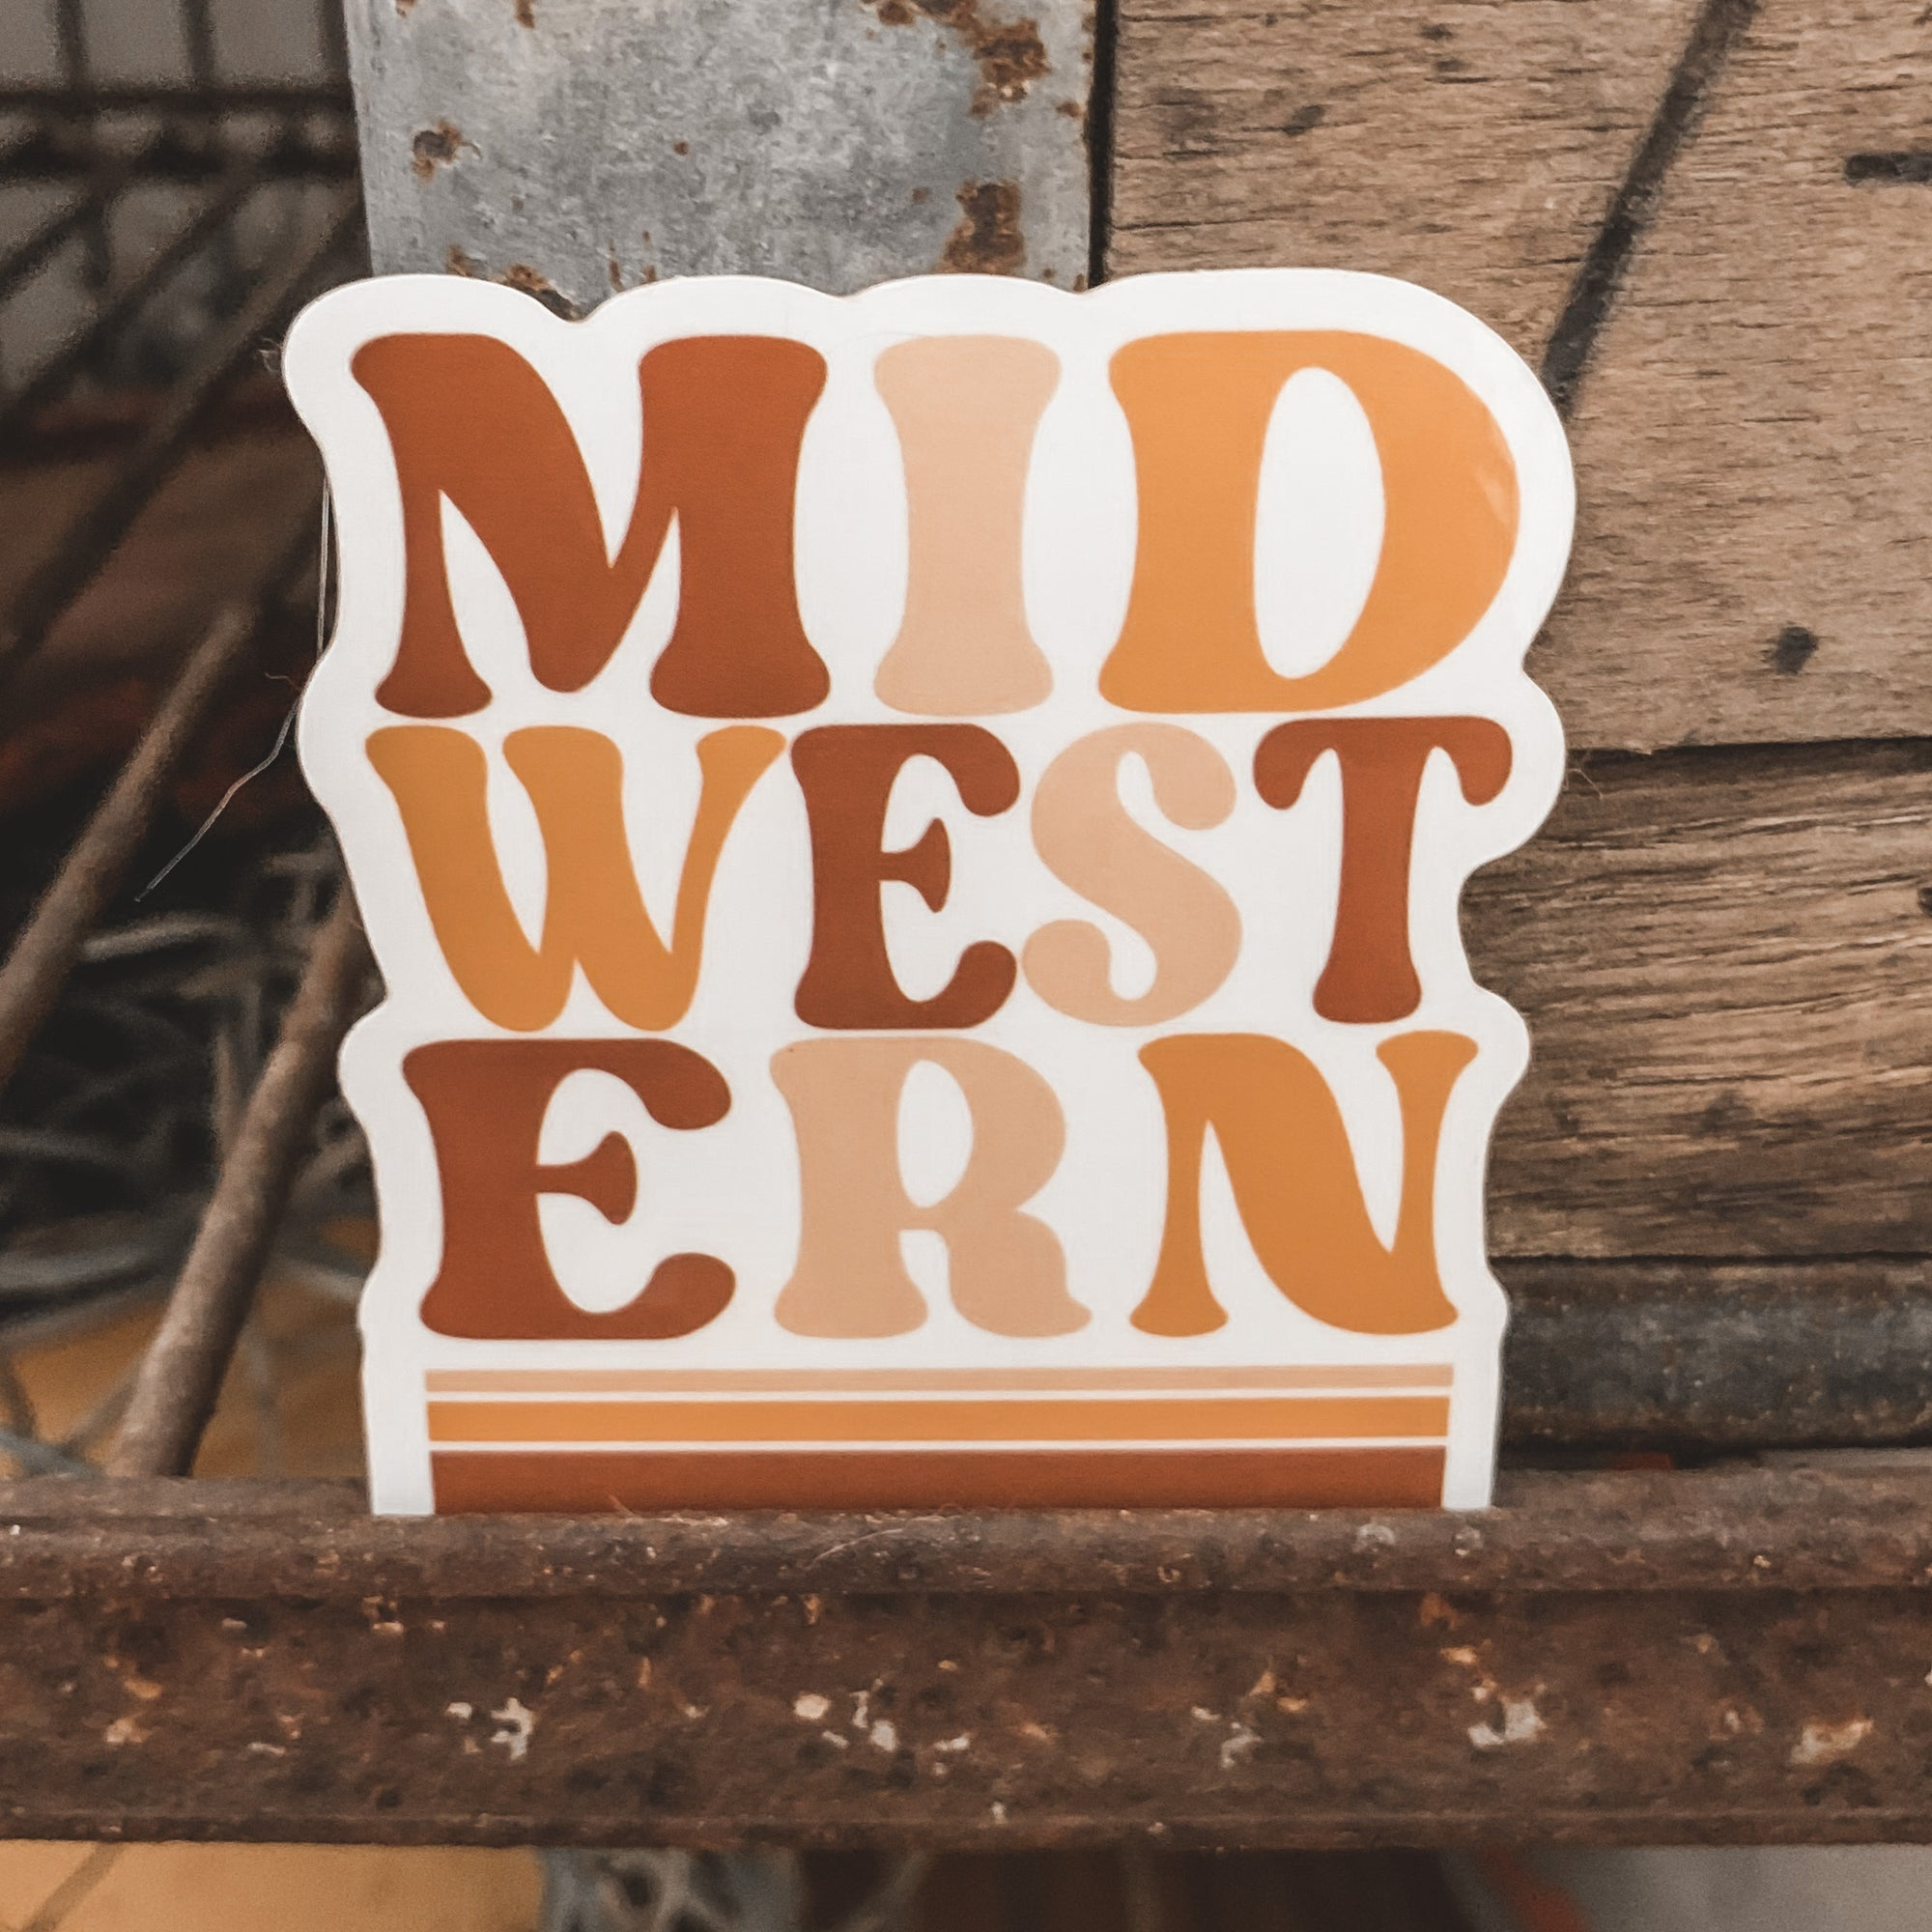 """MID-WEST-ERN"" Sticker"